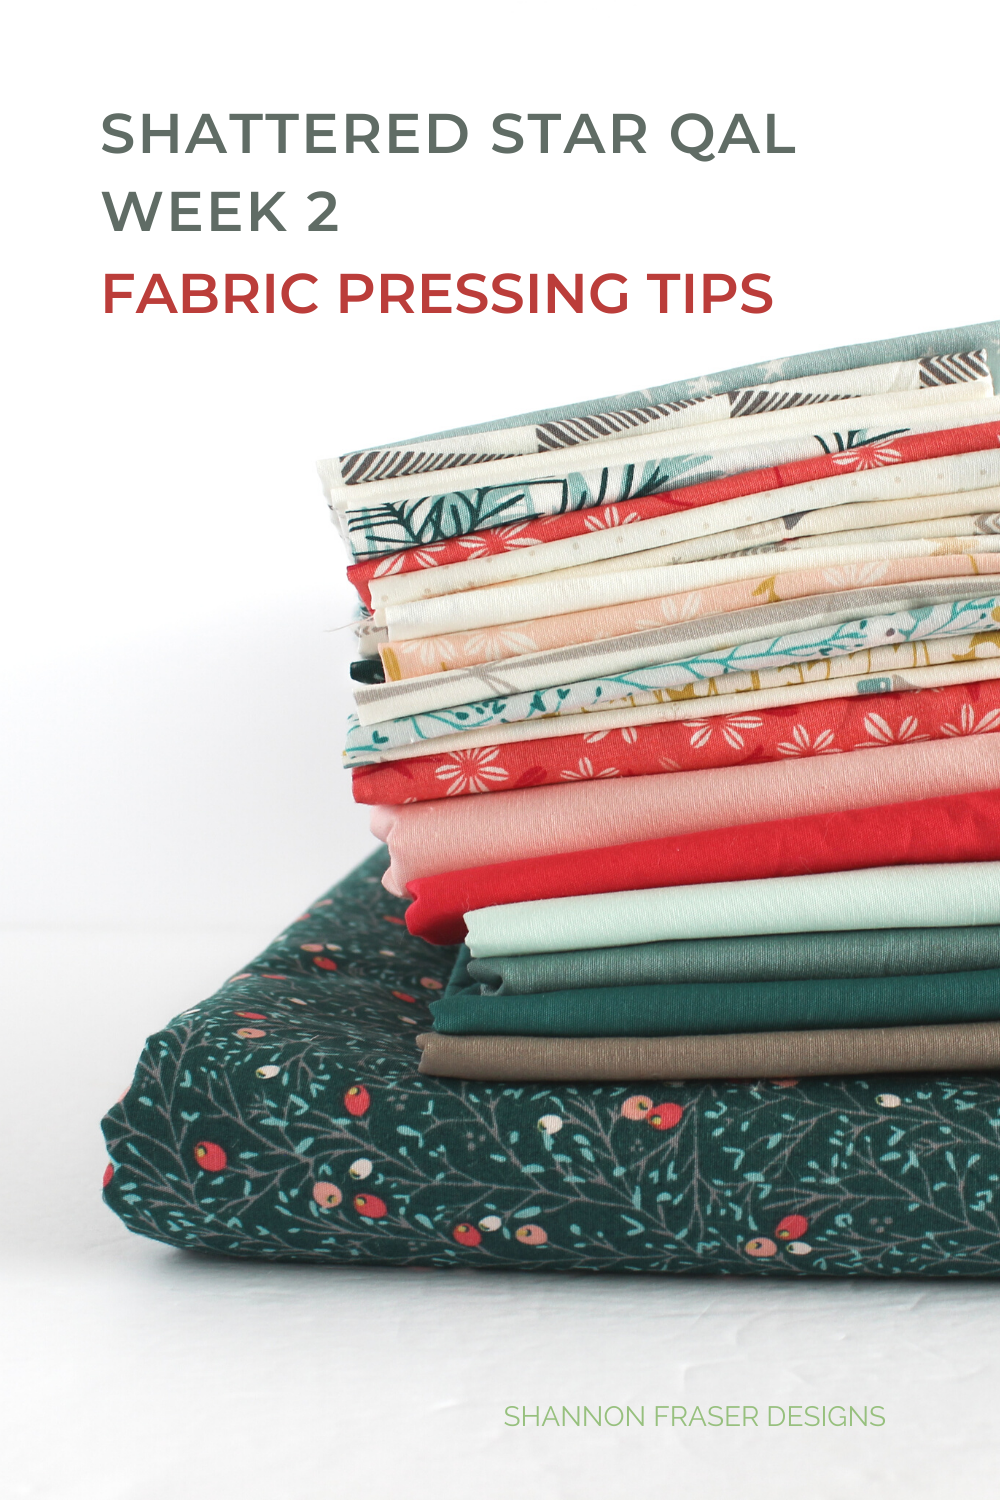 Stack of Art Gallery Fabrics ready to be pressed | Shattered Star QAL - Week 2: Part 1 - How to press your fabric | Shannon Fraser Designs #artgalleryfabrics